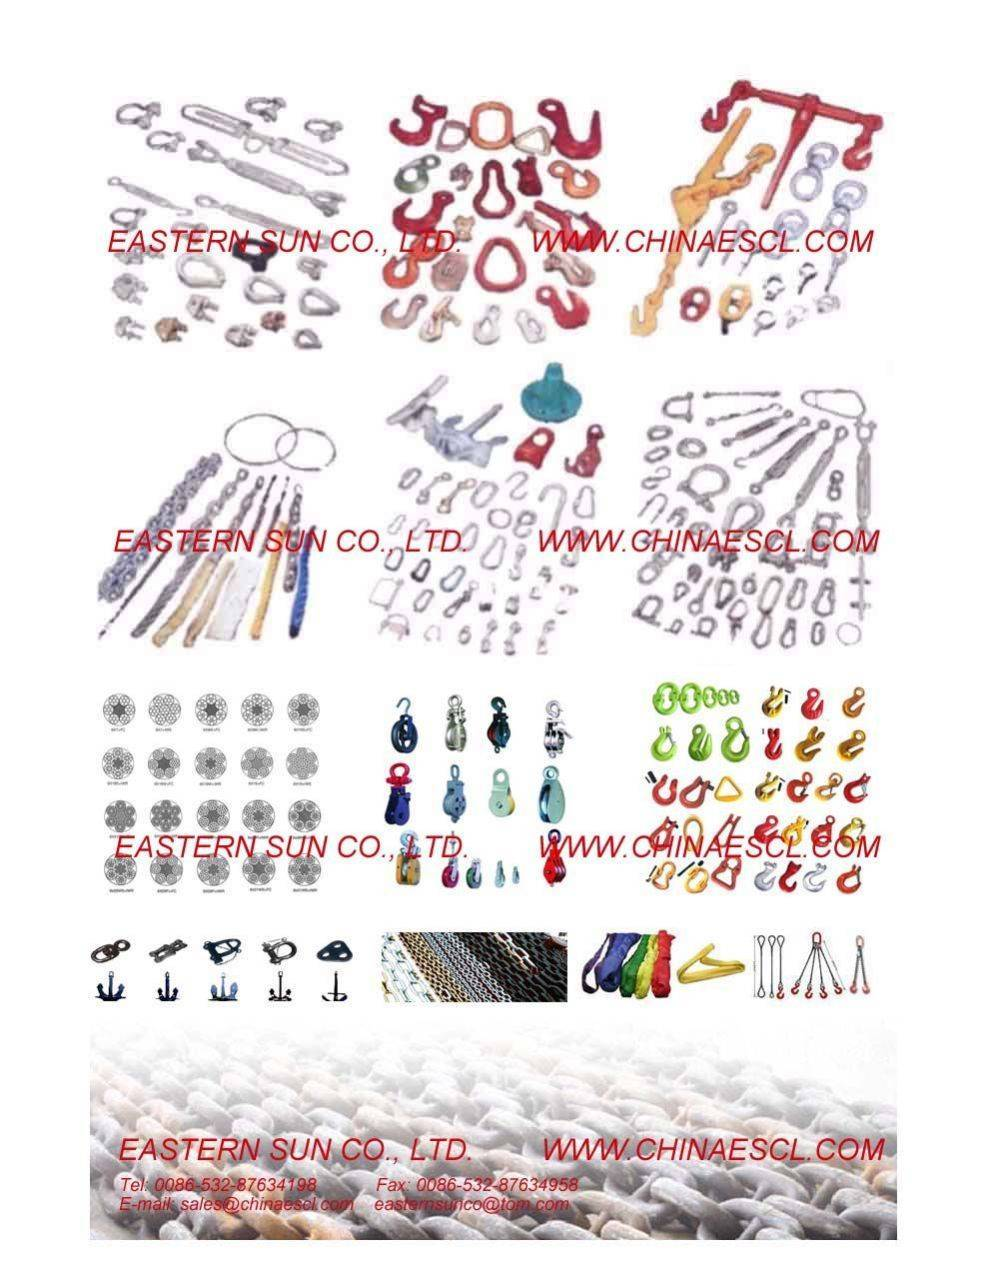 Rigging Hardware, Chain, Wire Rope, Anchor, Hook, Pulley, Shackle ...